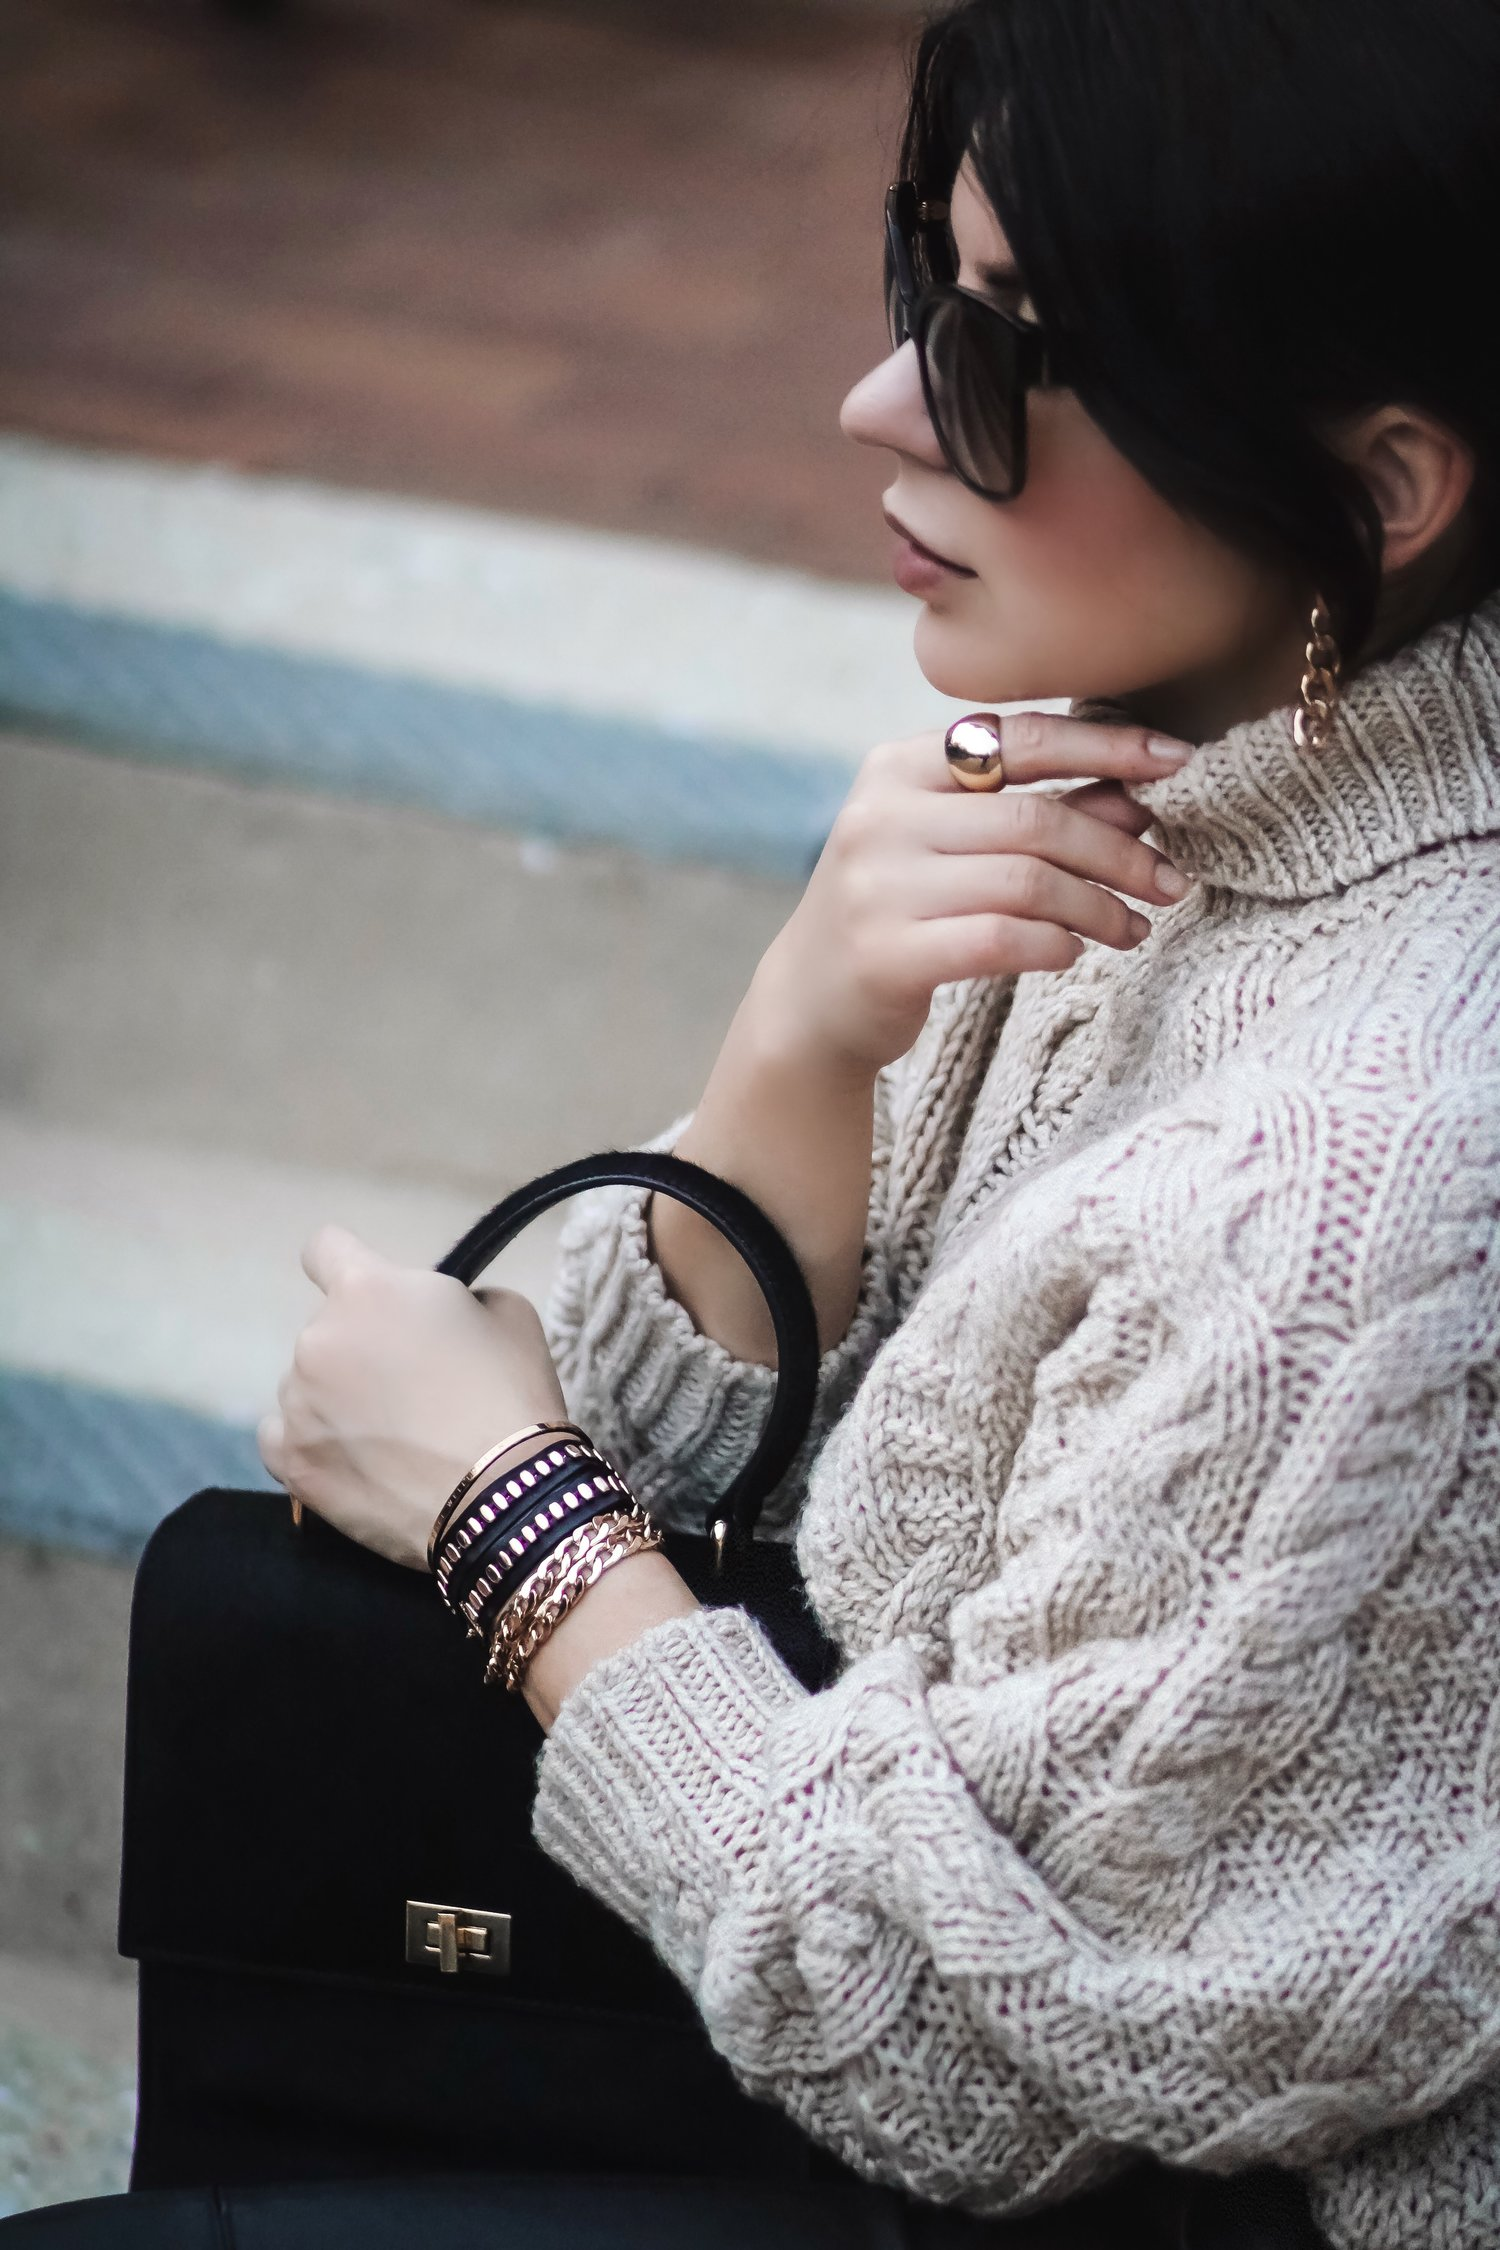 isabel-petite-blogger-gold-jewelry